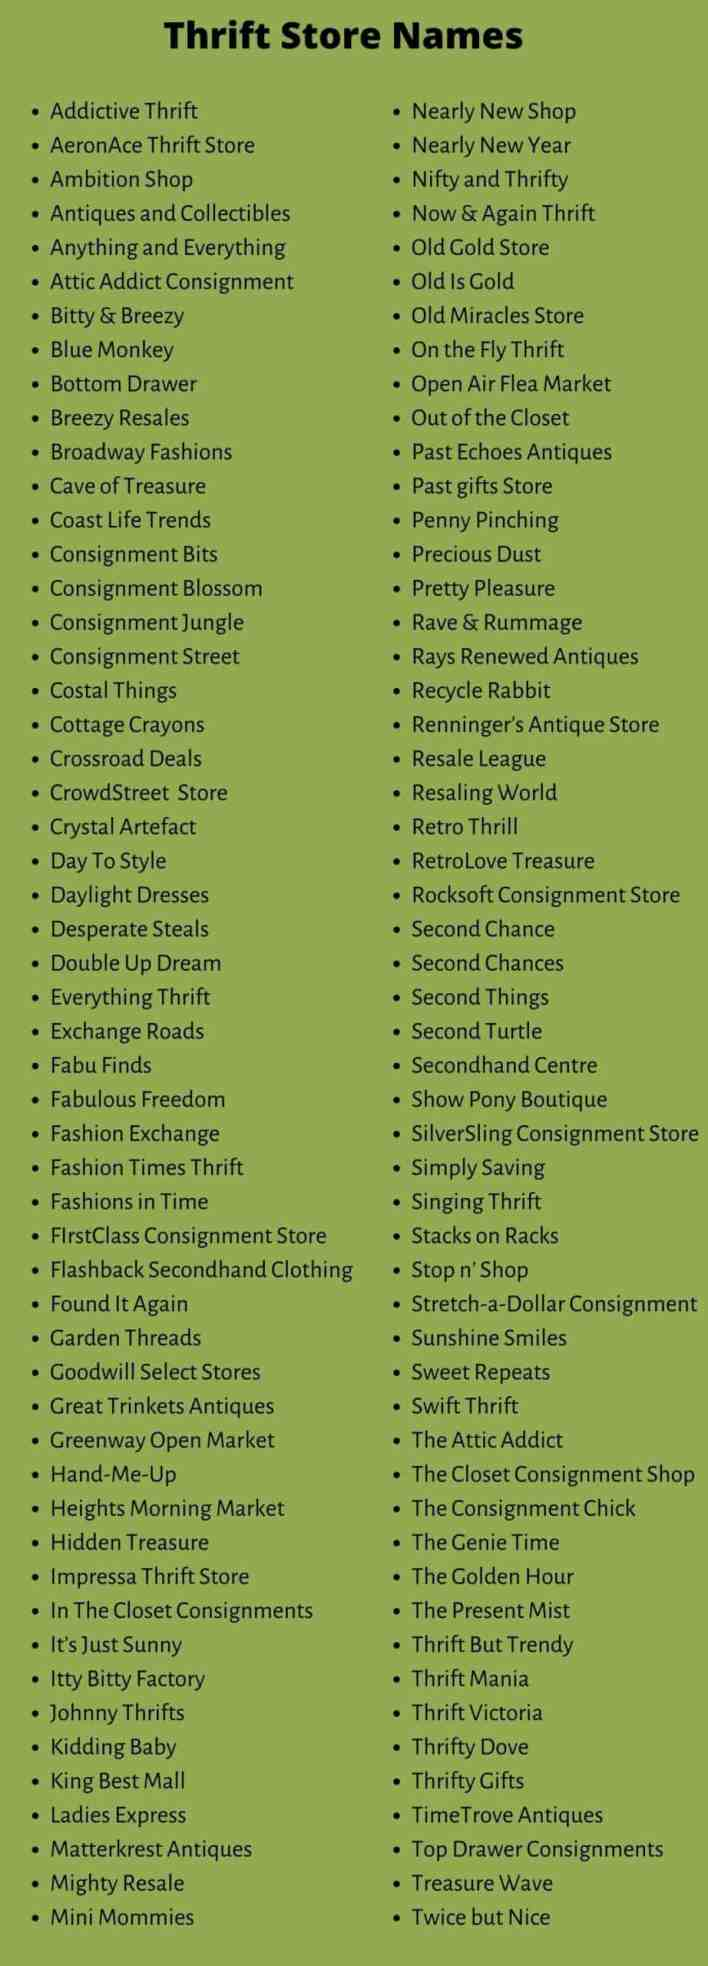 Thrift Store Names